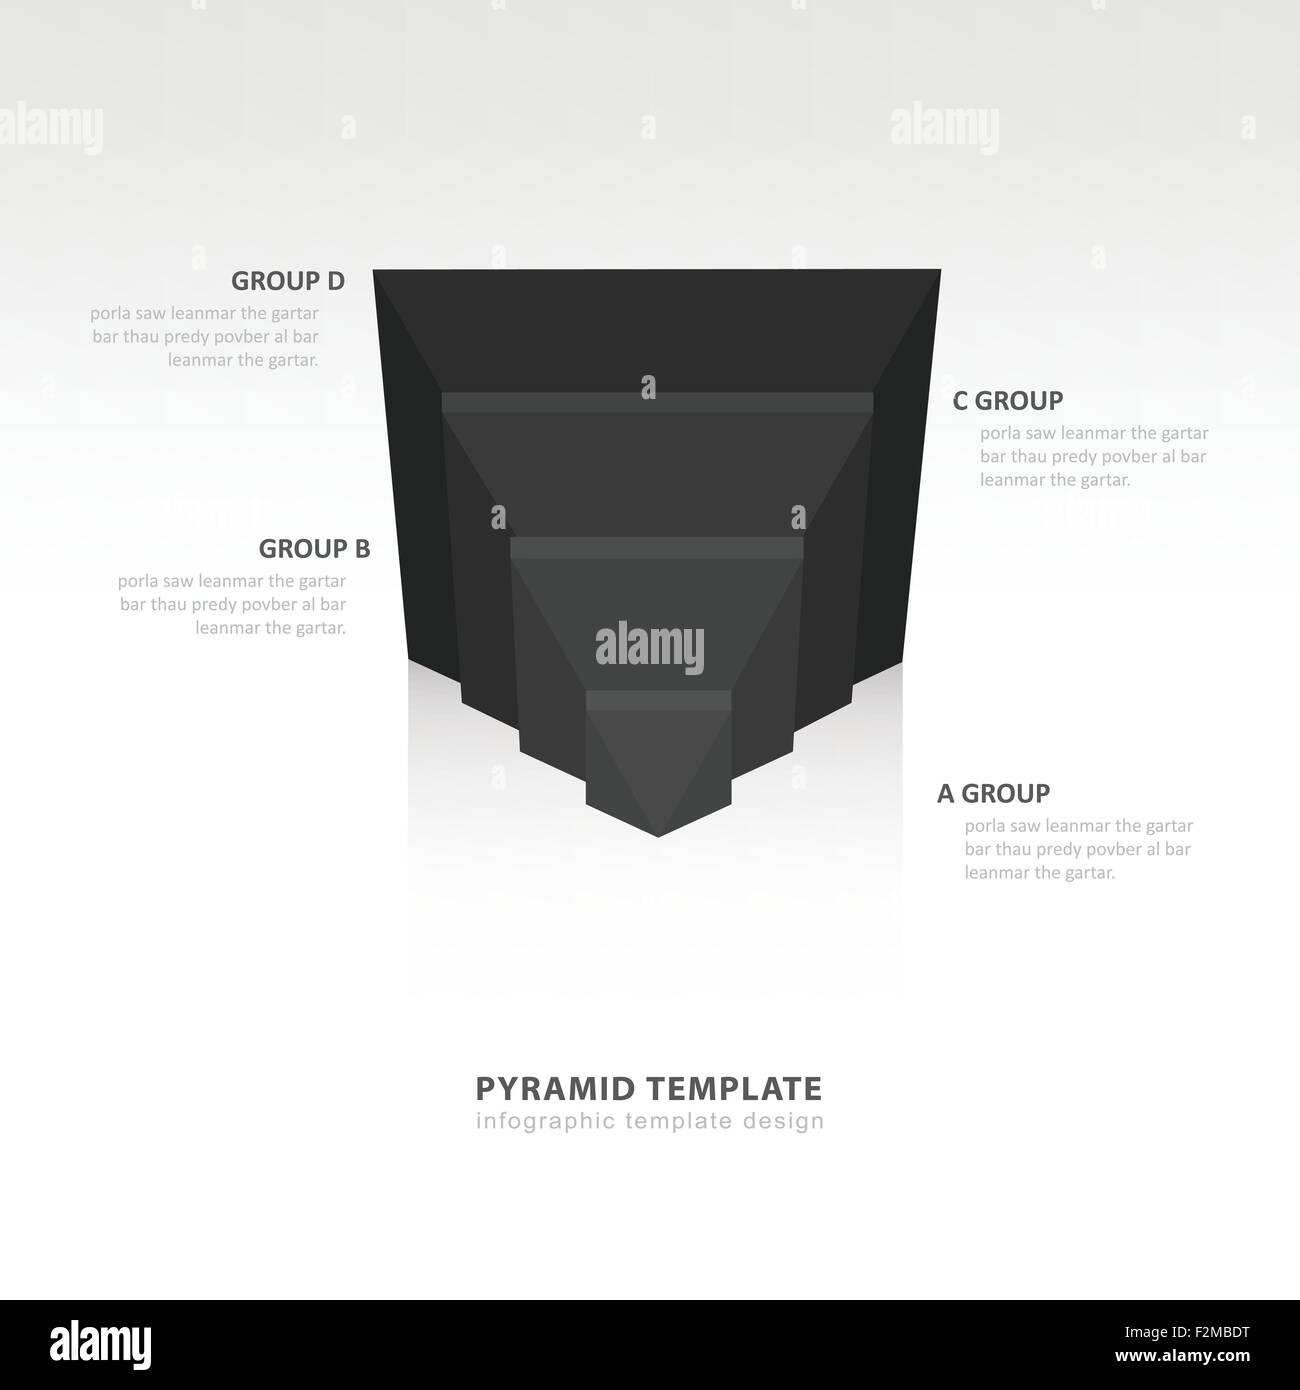 Pyramid Infographic Template Stock Photos & Pyramid Infographic ...